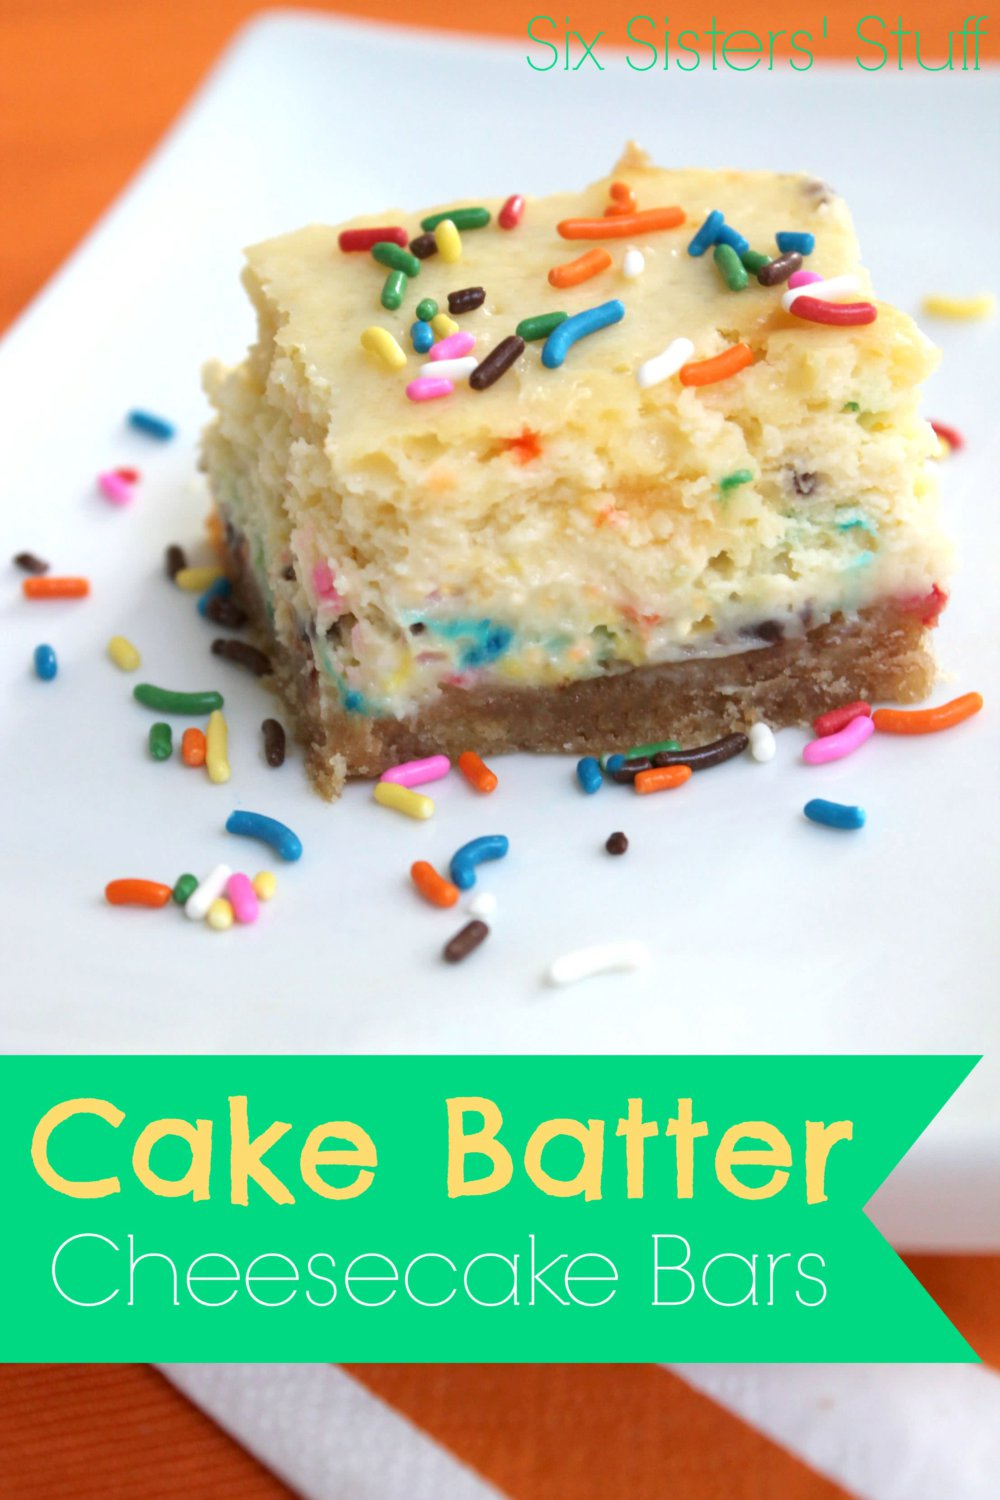 Cake Batter Cheesecake Bars Recipe